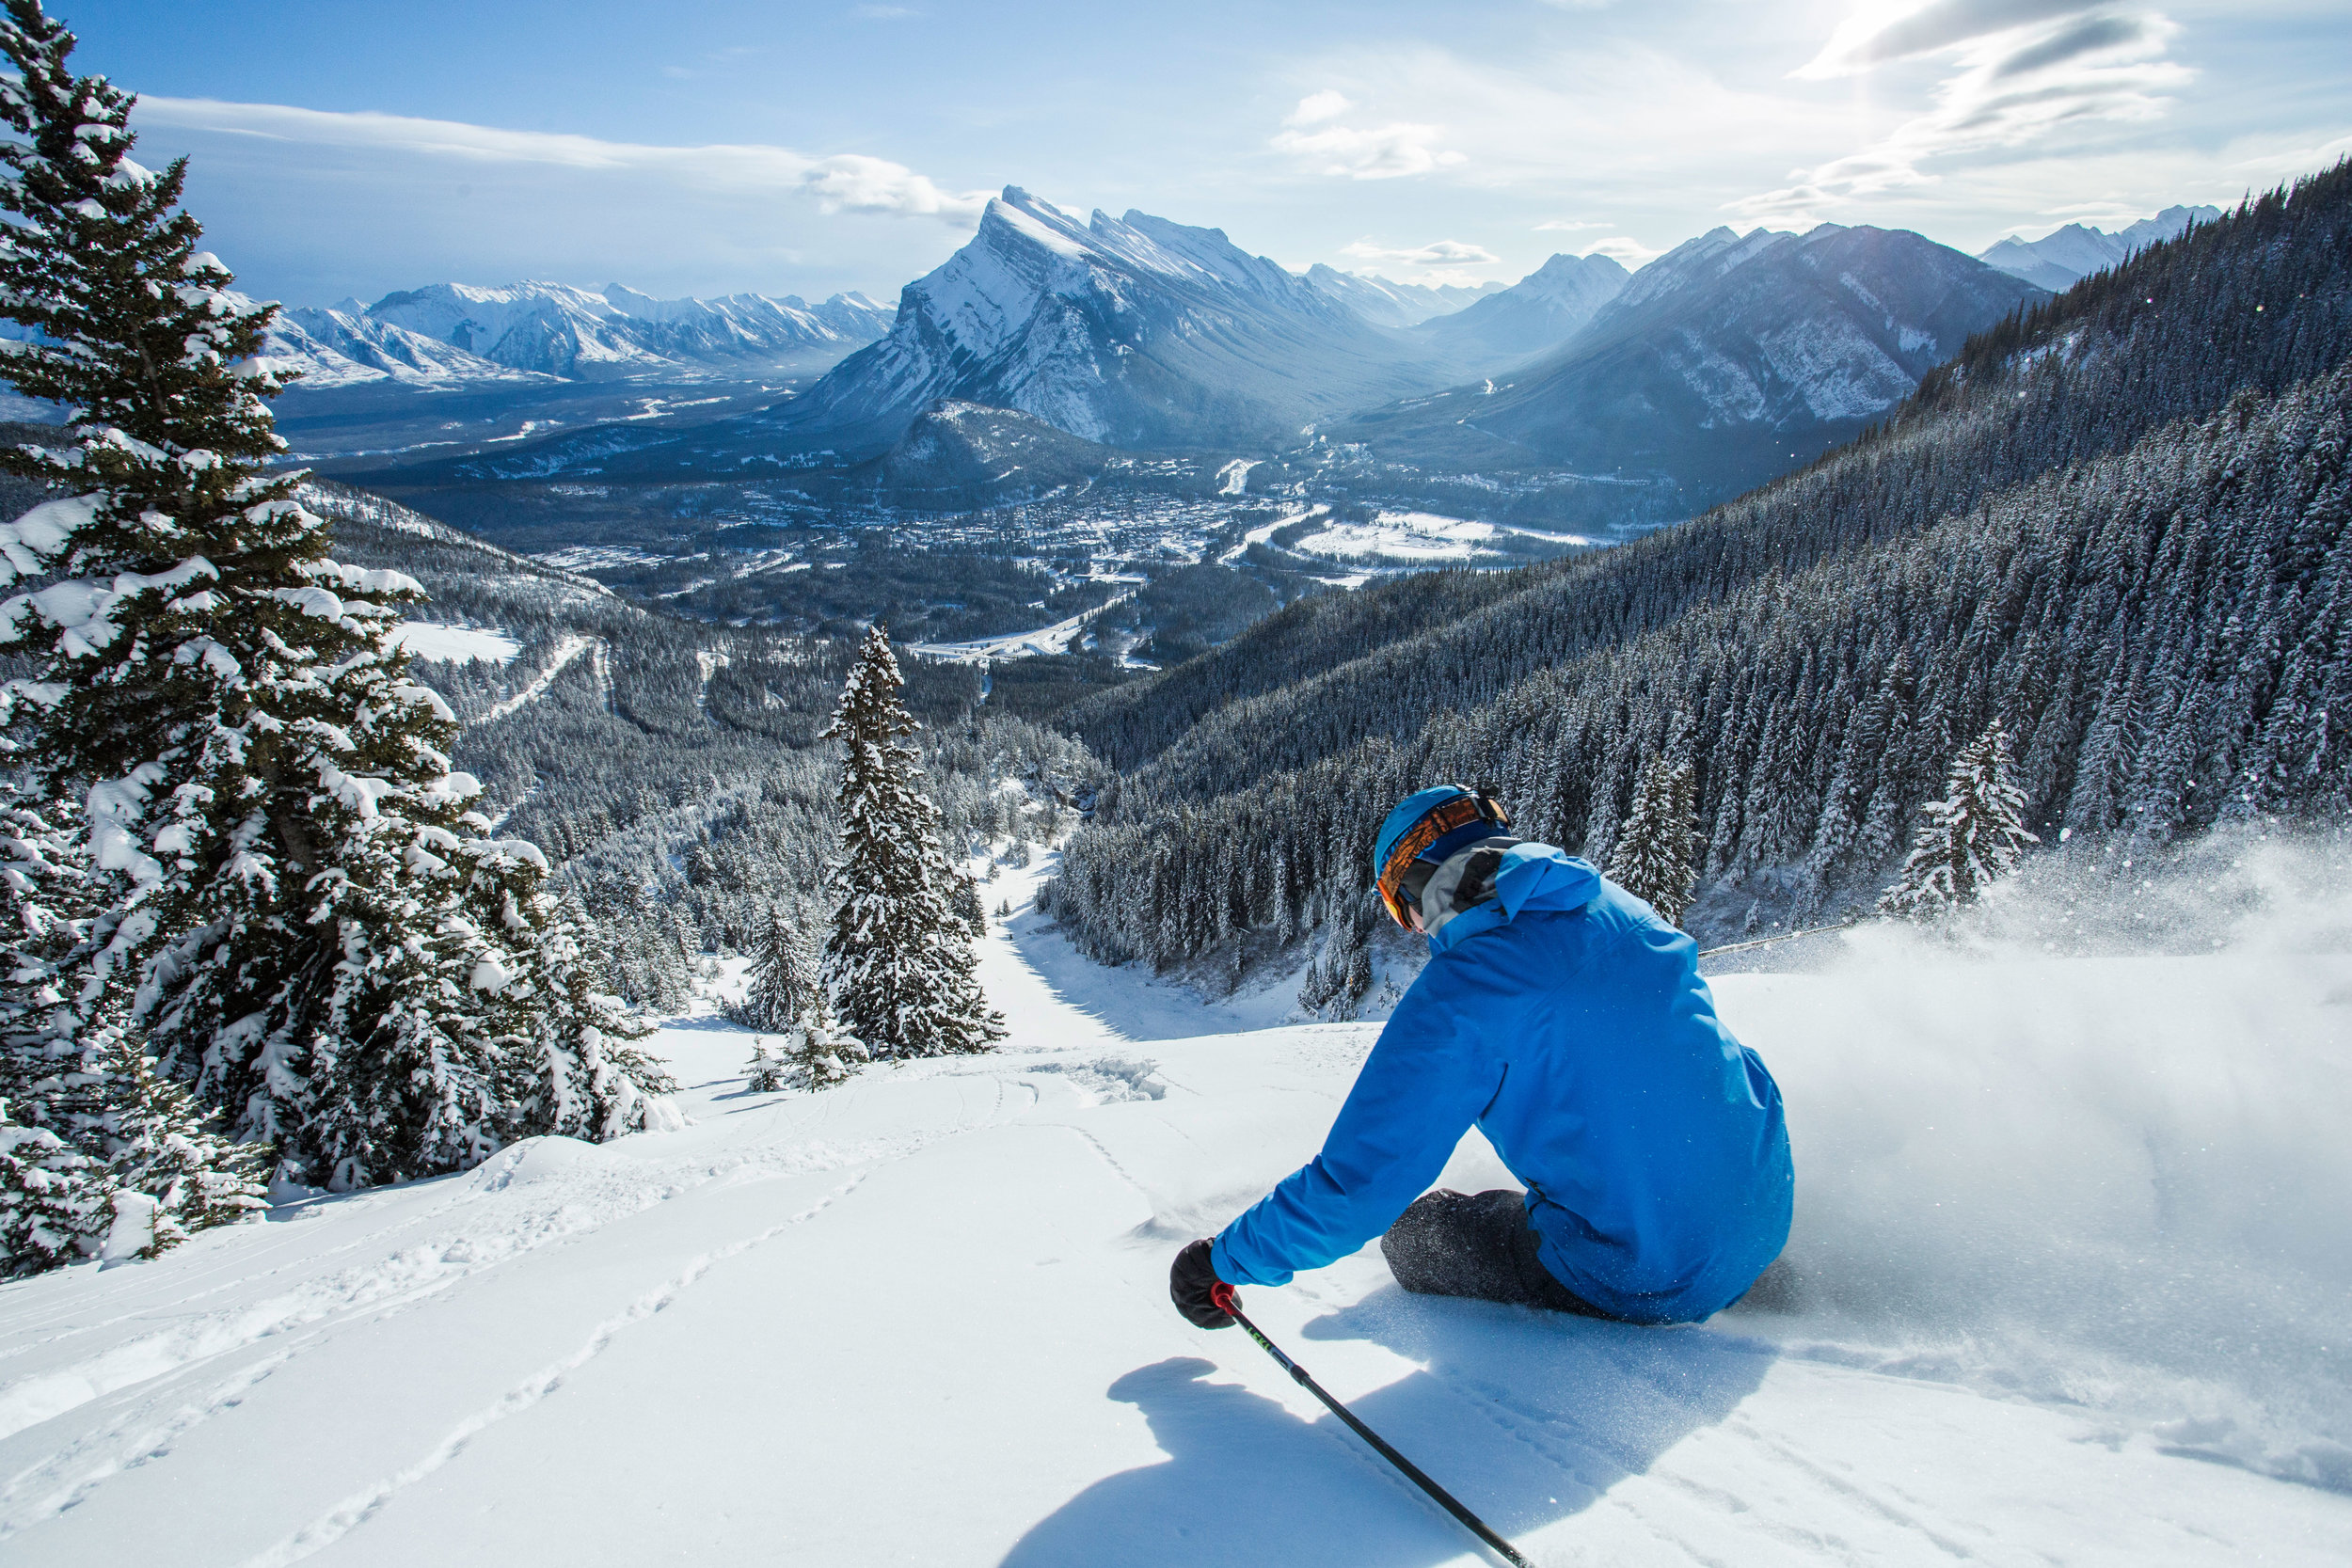 Guided ski trip in the Canadian Rockies.